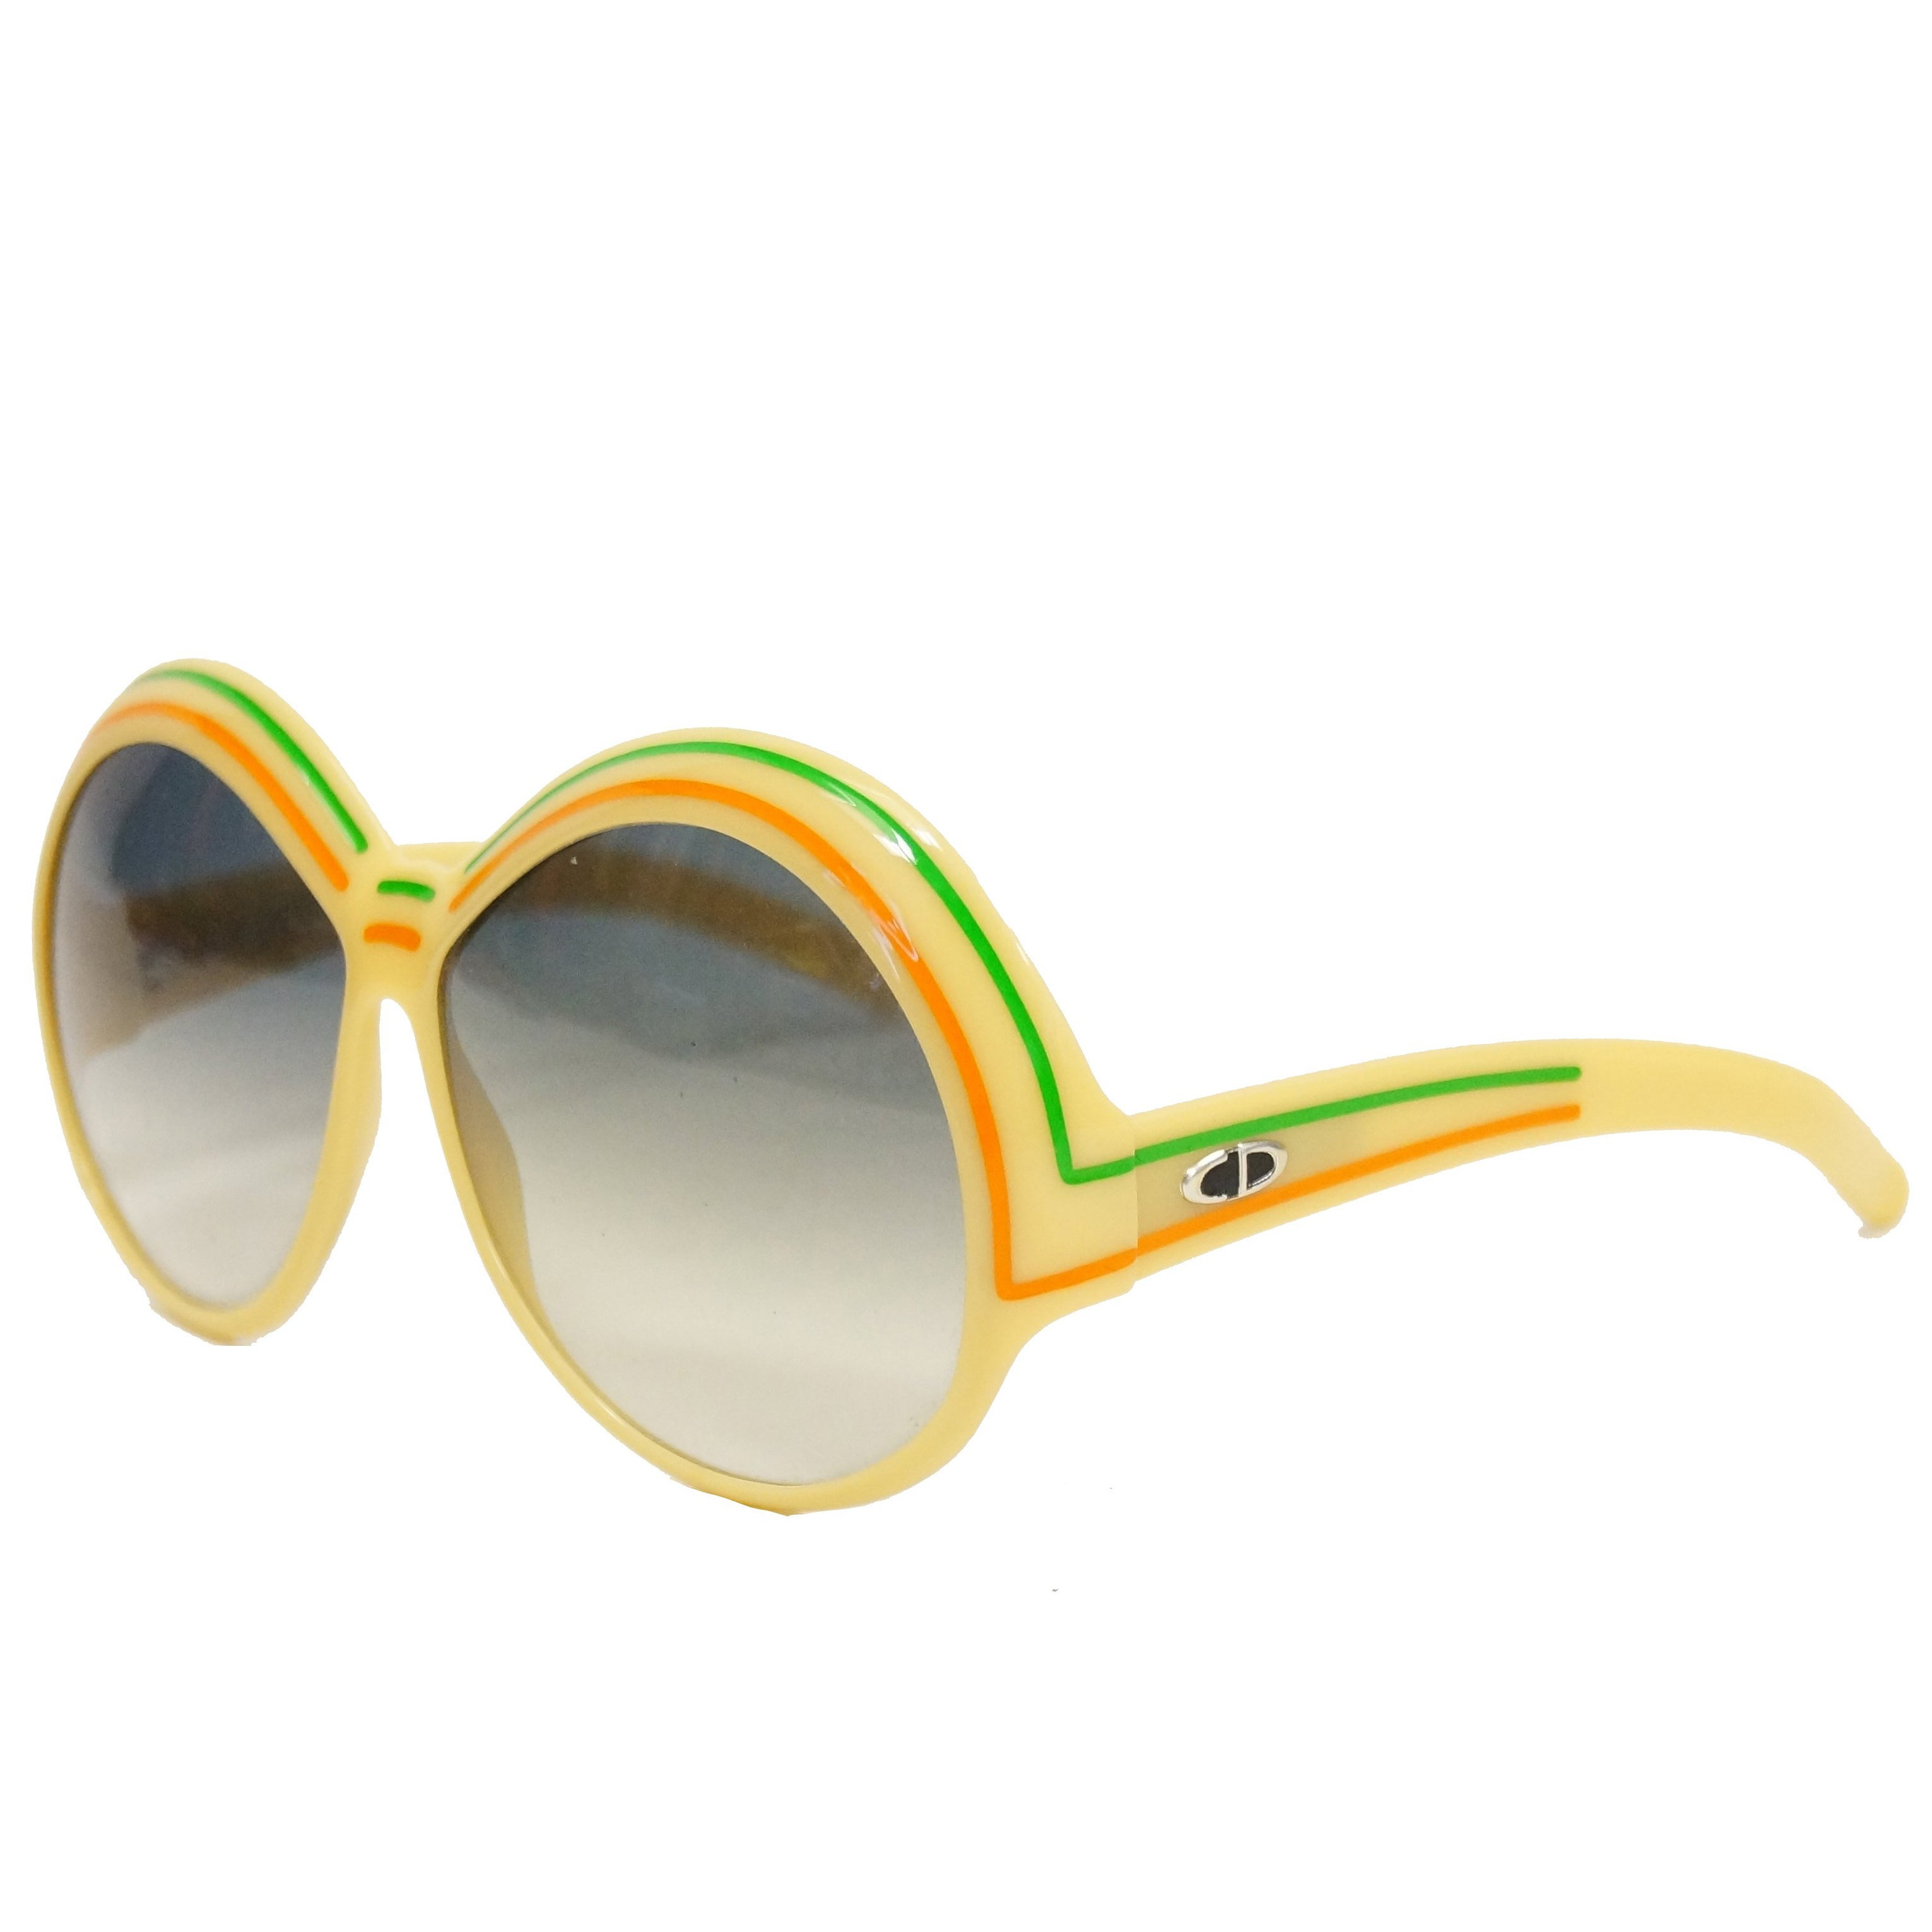 Christian Dior by Optyl 2040 70 Sunglasses, C. 1970s